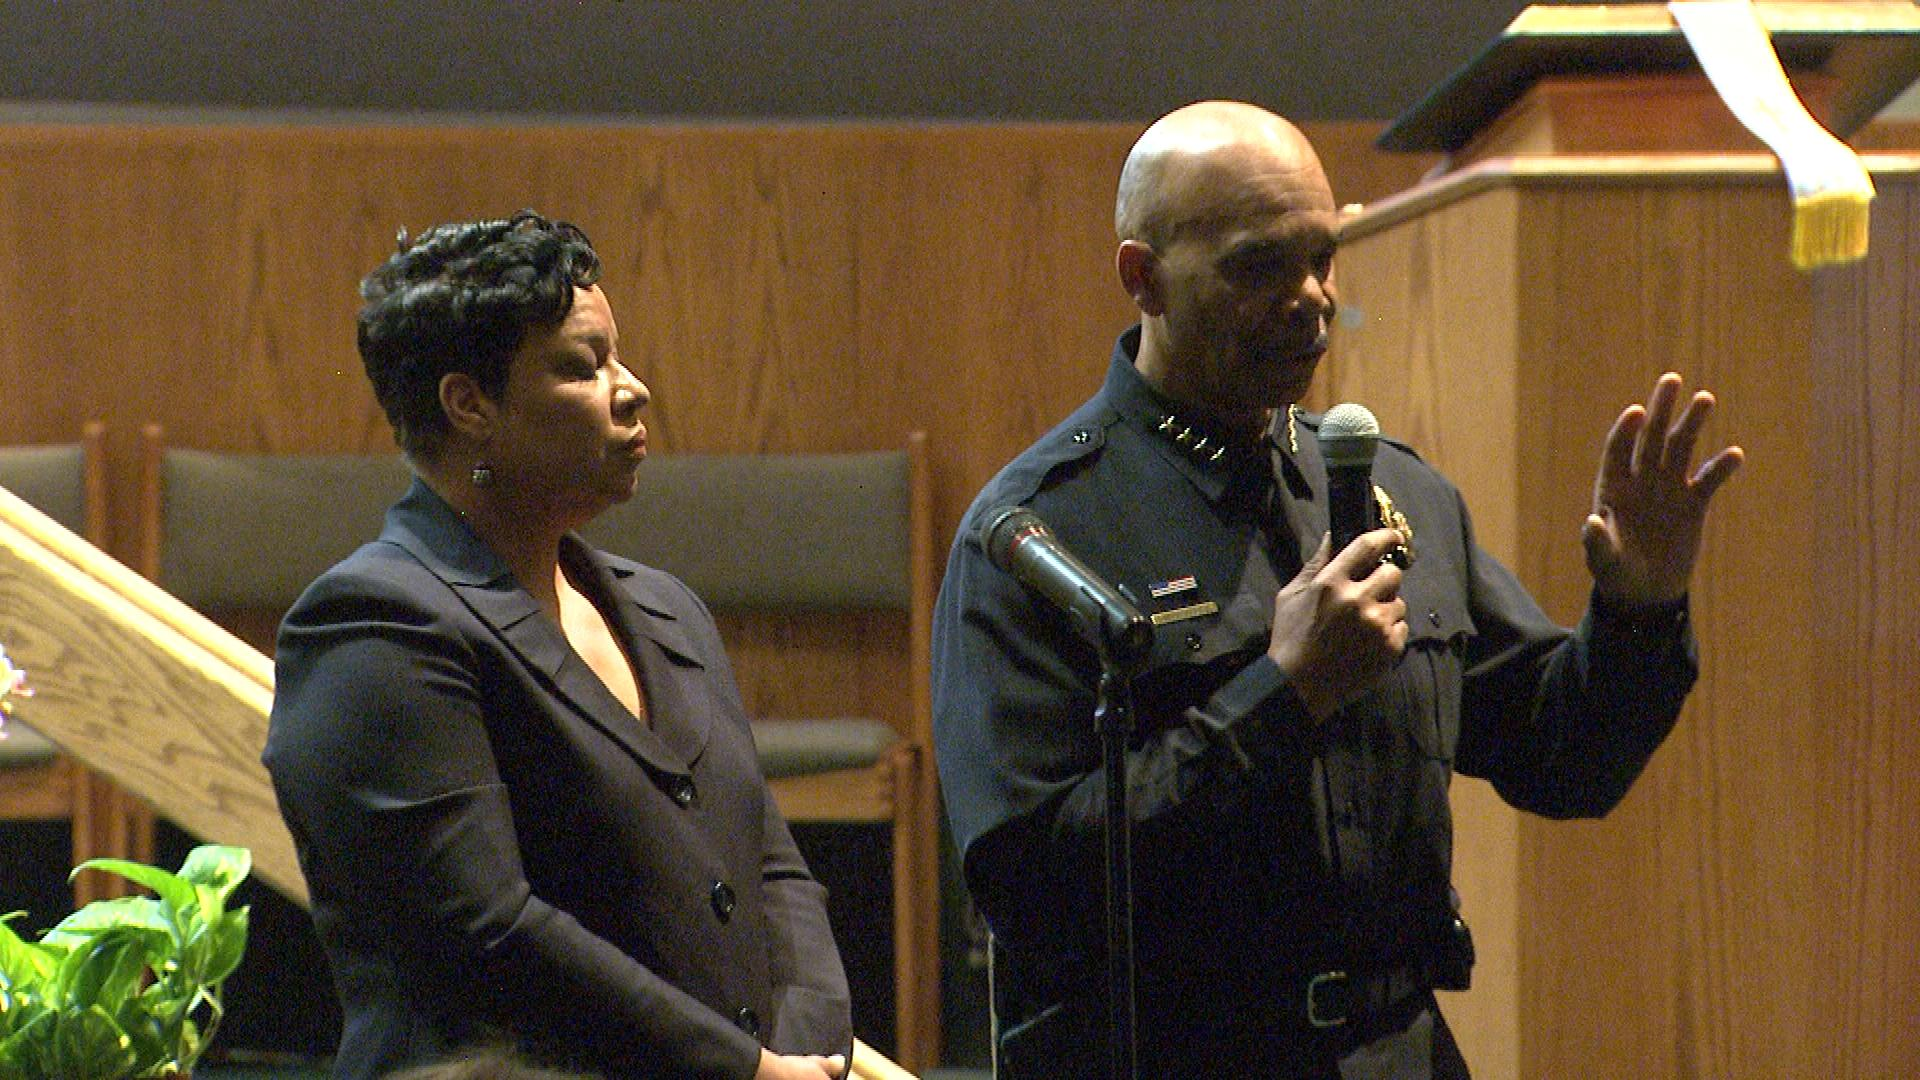 Denver Police Chief Robert White at the community meeting (credit: CBS)